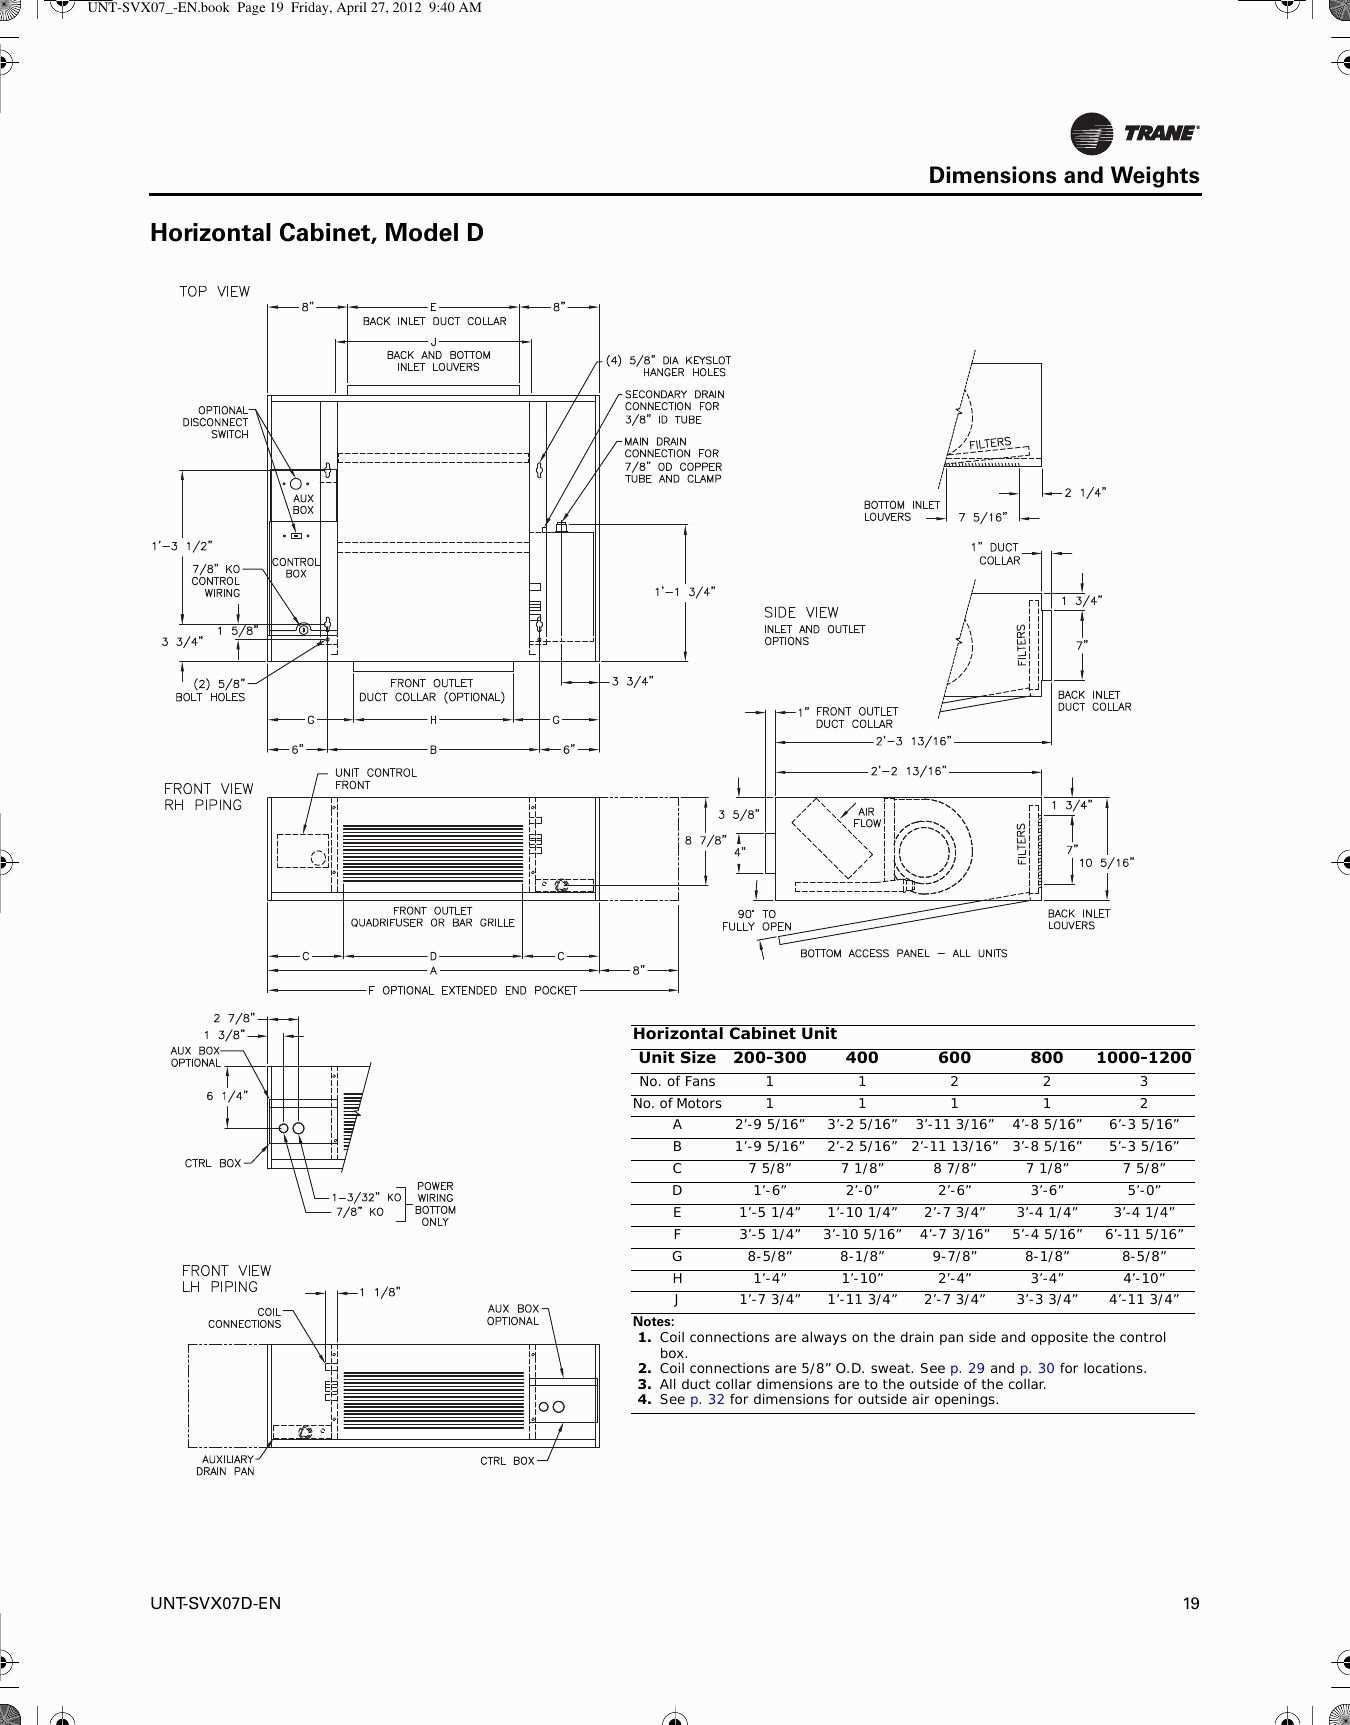 1996 Jeep Grand Cherokee Engine Diagram Unique 1997 Jeep Grand Cherokee Instrument Cluster Wiring Of 1996 Jeep Grand Cherokee Engine Diagram